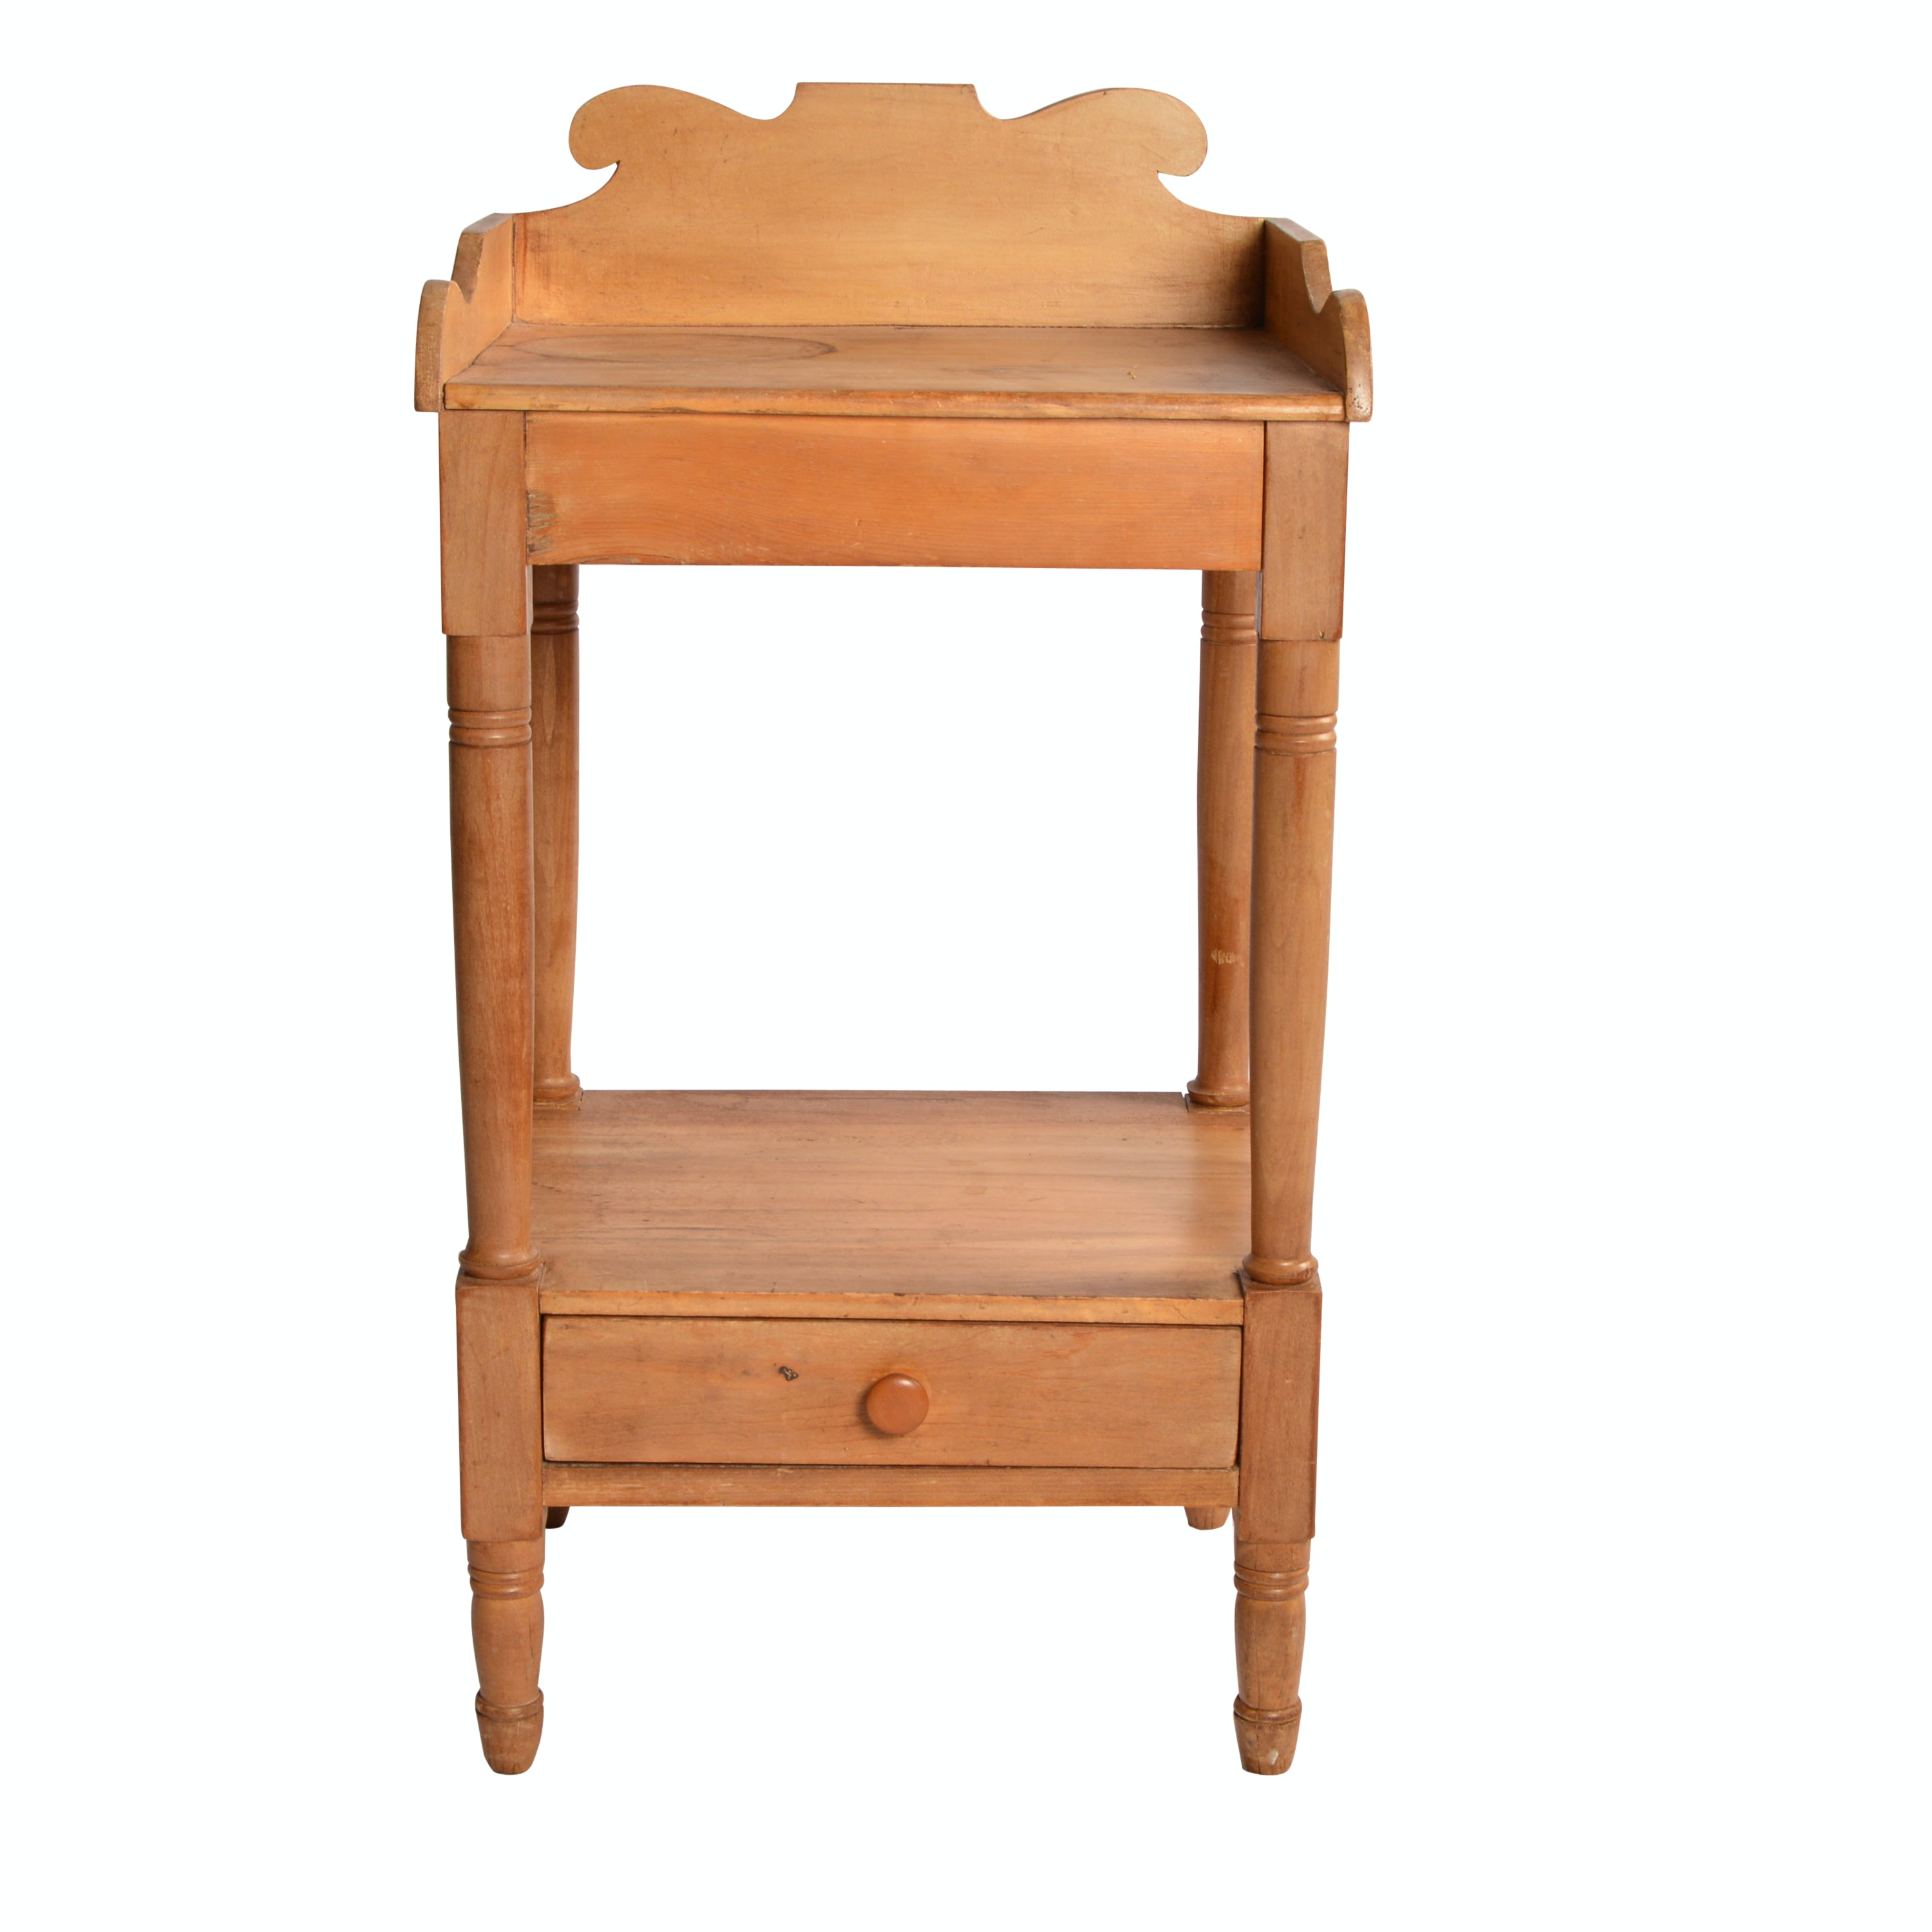 Antique Sheraton Style Wash Stand